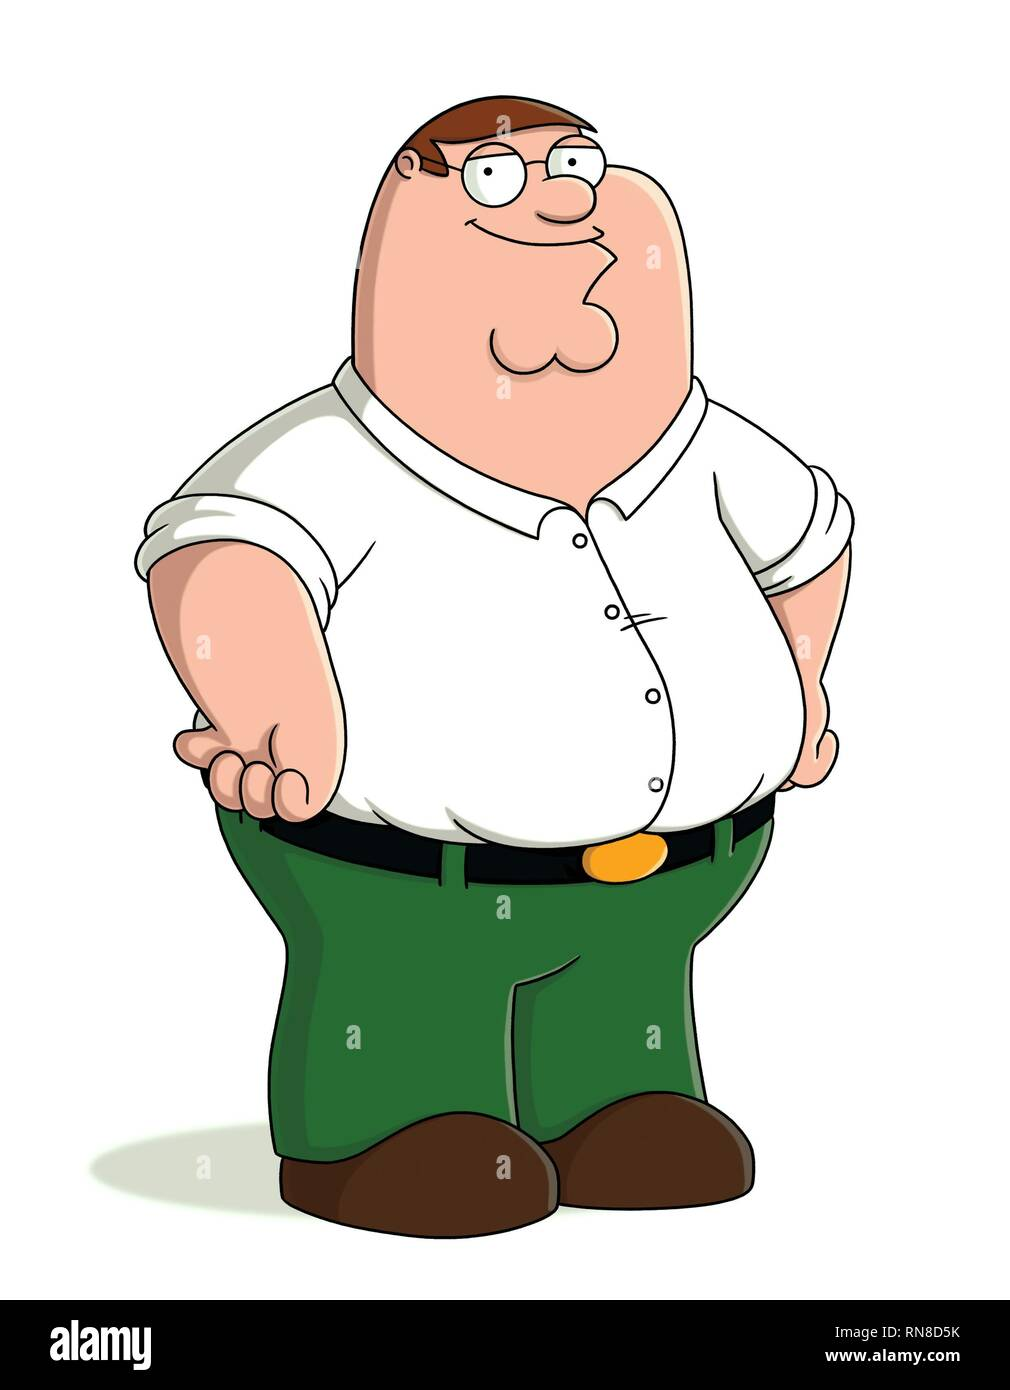 FAMILY GUY, PETER GRIFFIN, 1999 - Stock Image